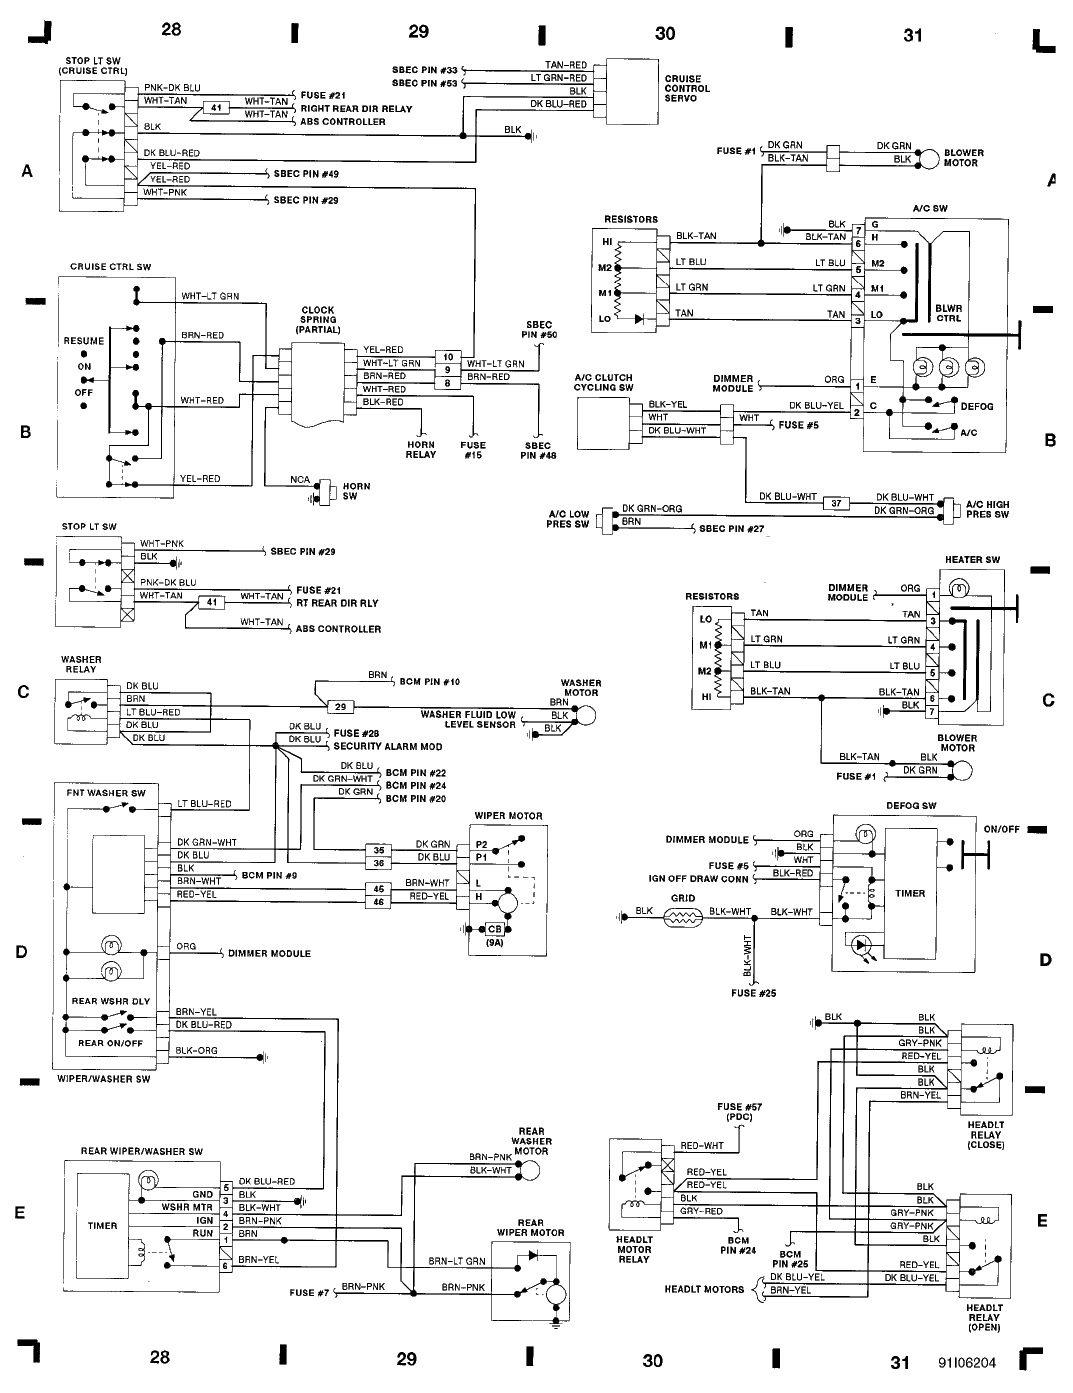 1991 Chrysler Lebaron Wiring Diagram Real 94 Isuzu Impulse Pickup 1994 1990